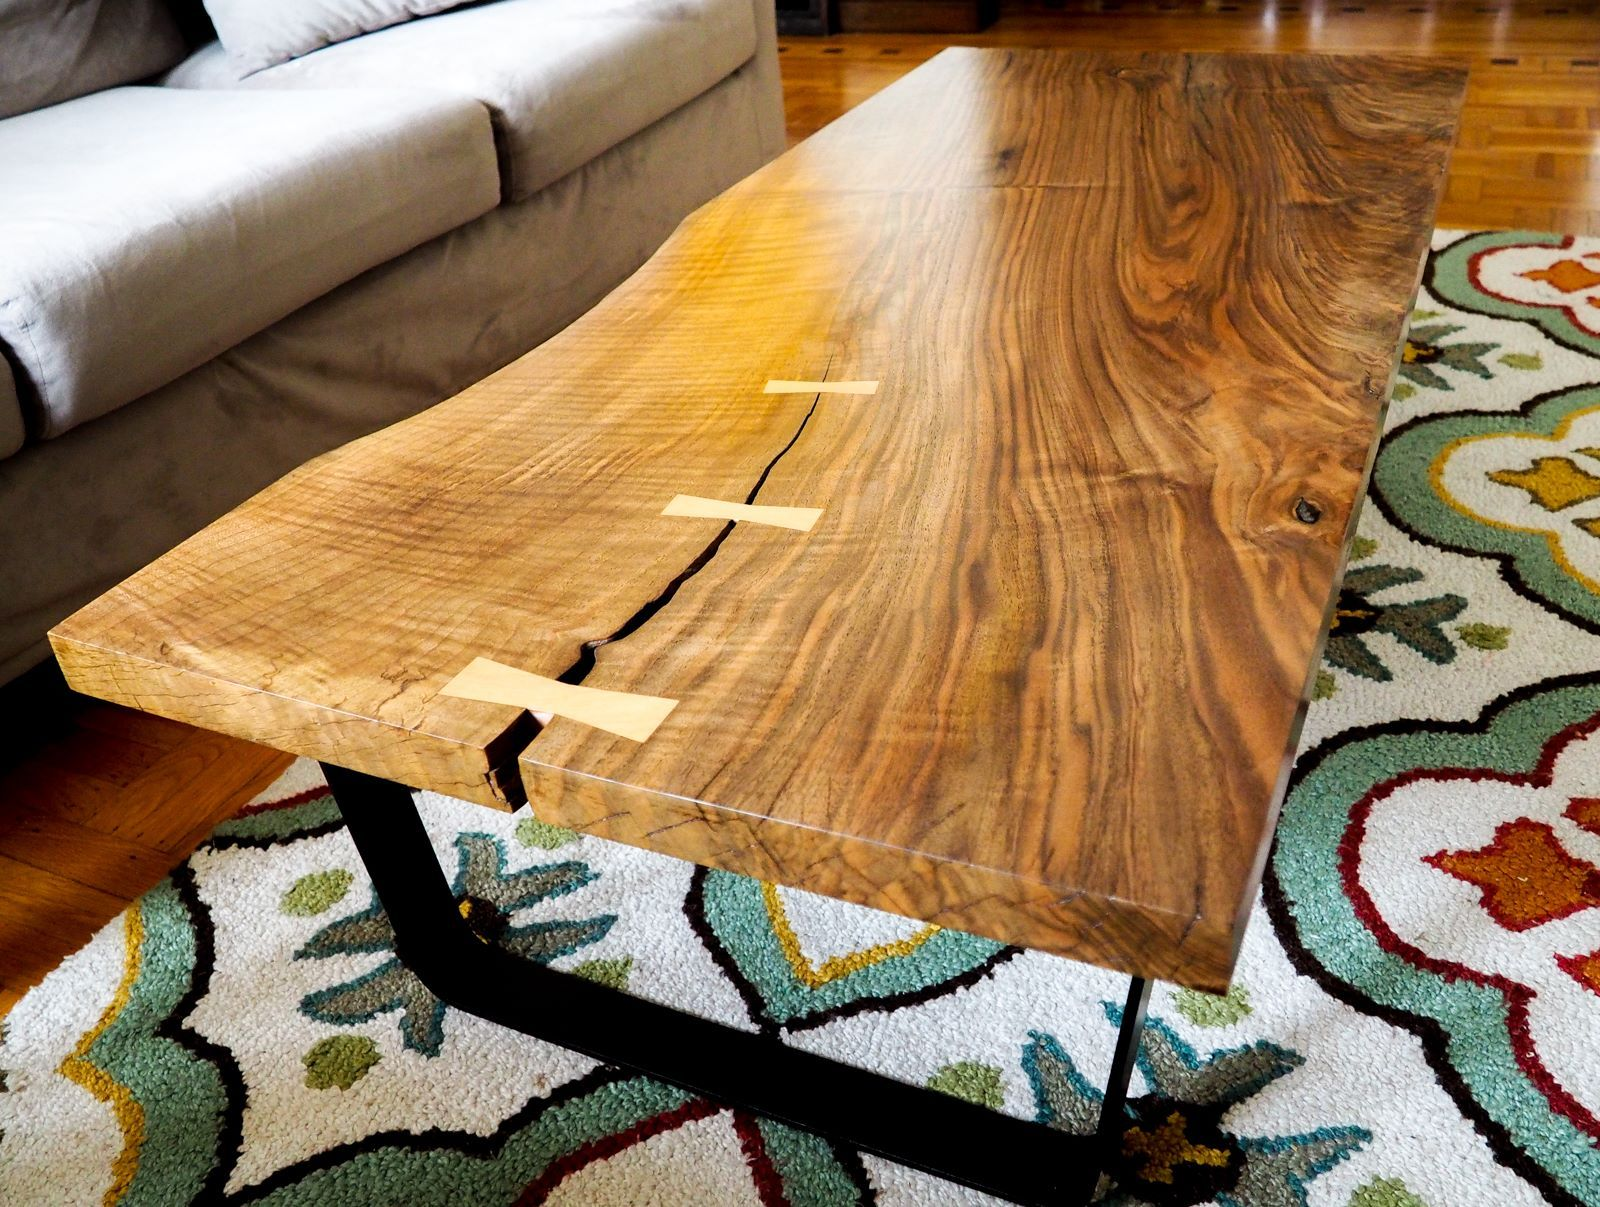 Handmade walnut wood coffee table by Baker Original coffeetable